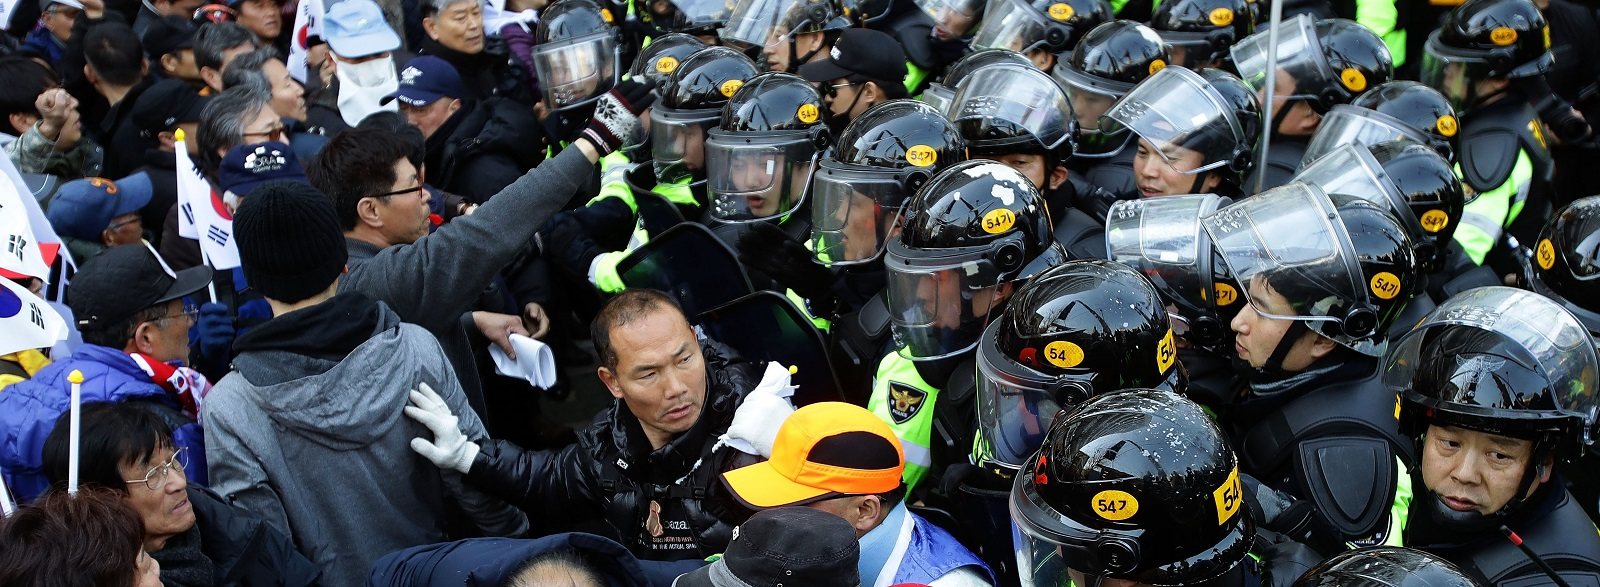 Supporters of Park Geun-hye are blocked by police after a rally in Seoul opposing her impeachment on 10 March. (Photo: Chung Sung-Jun/Getty Images)